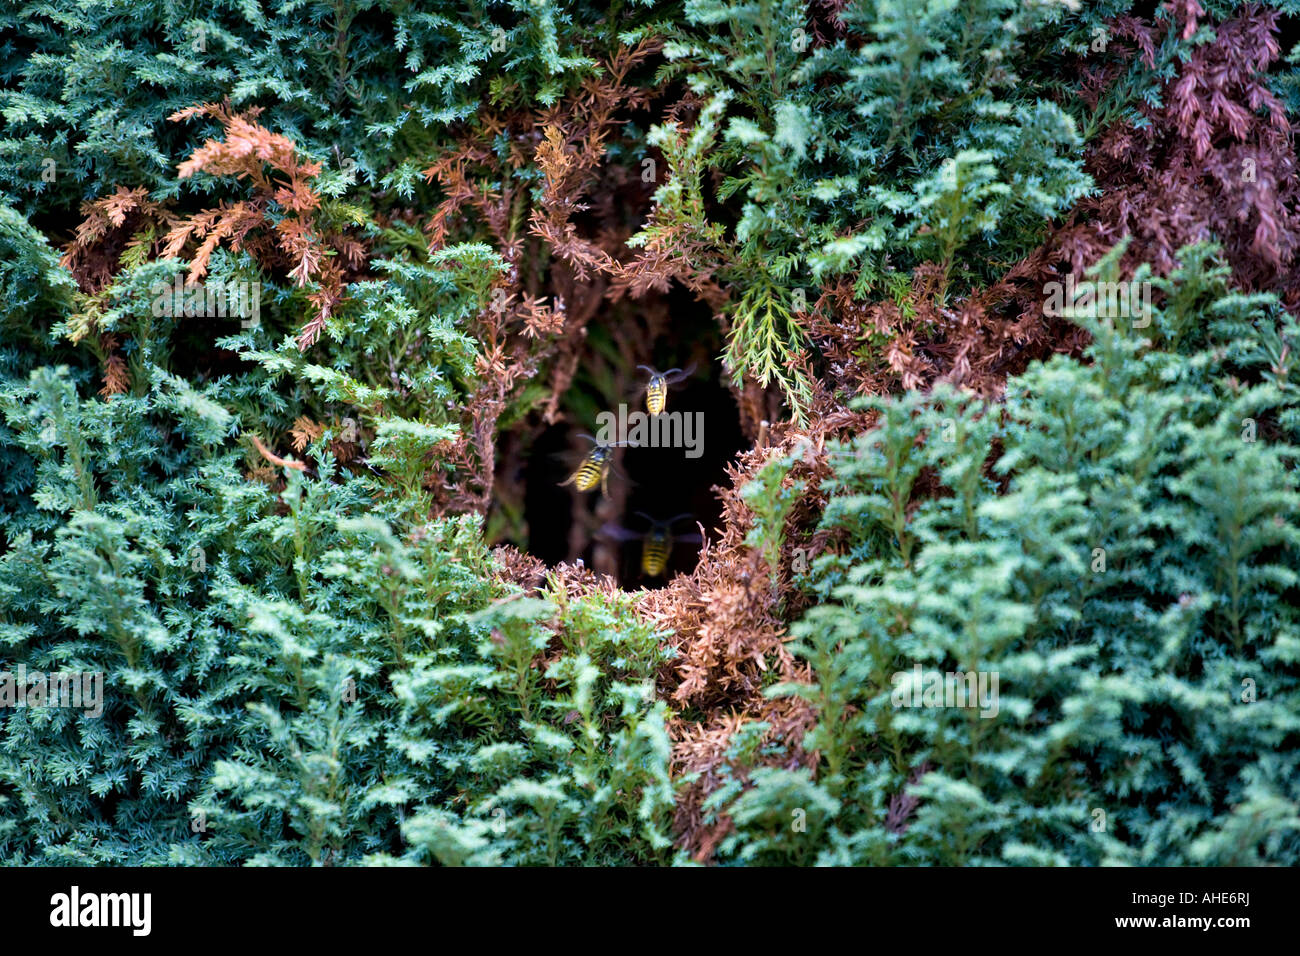 IN ESSEX WASPS HAVE BUILT A NEST IN THIS CONIFER CLOSE TO HOUSES AND EATEN A HOLE TO GAIN ENTRANCE - Stock Image